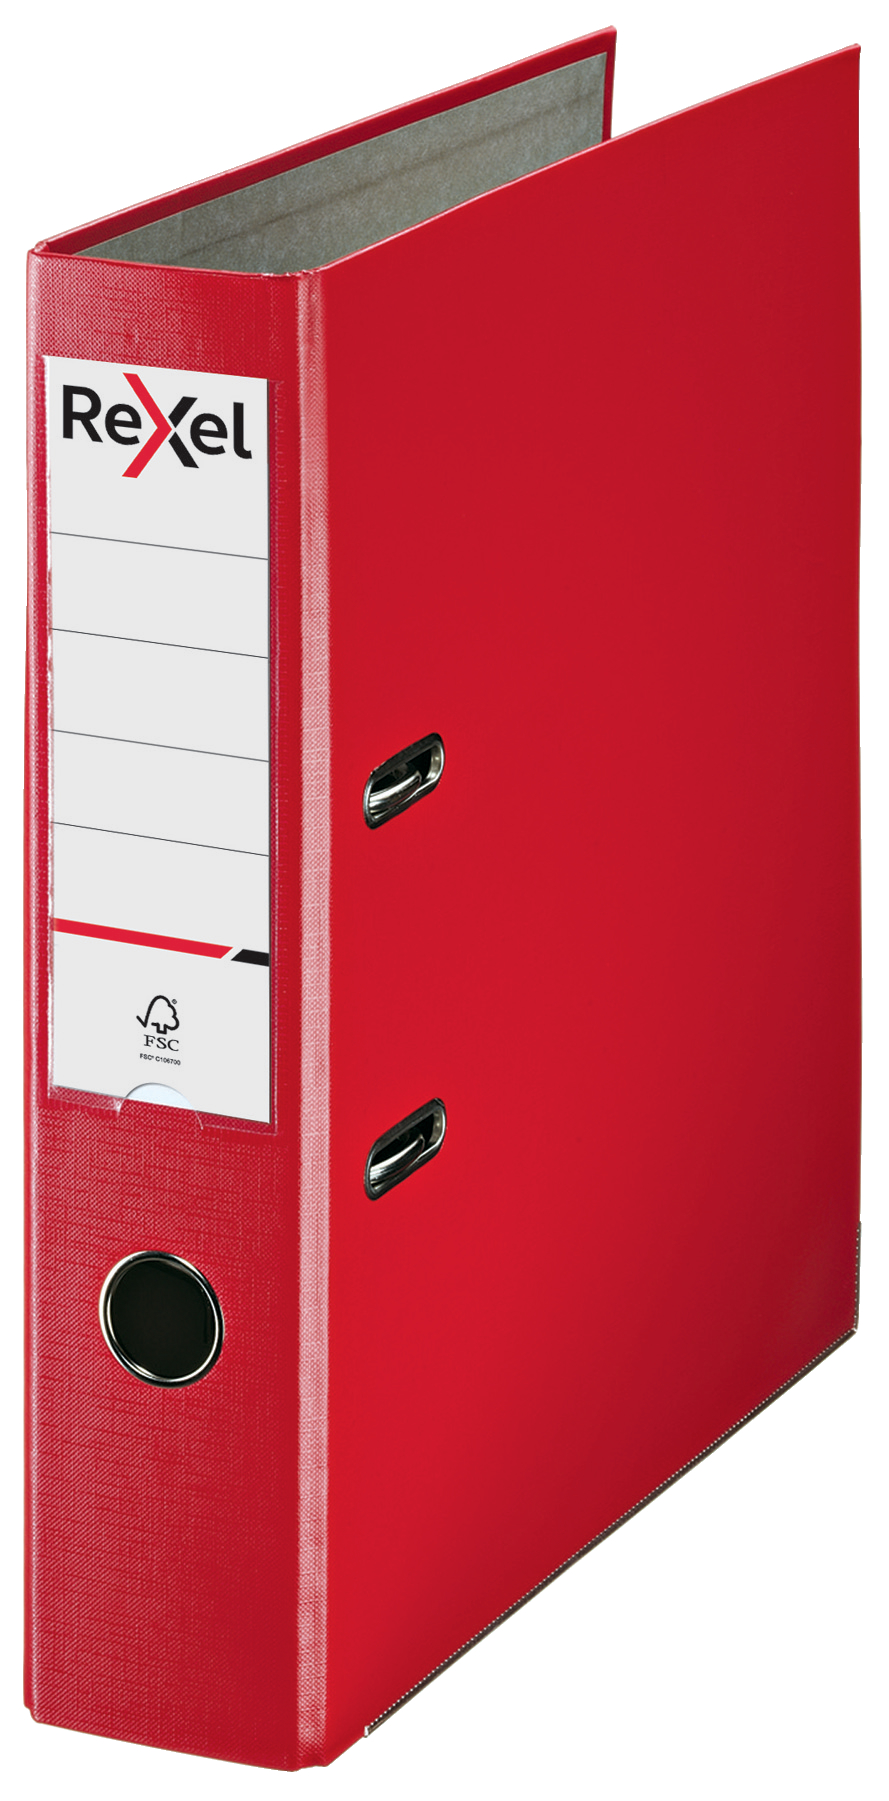 Lever Arch Files Rexel Lever Arch File ECO Polypropylene A4 75mm Spine Width Red